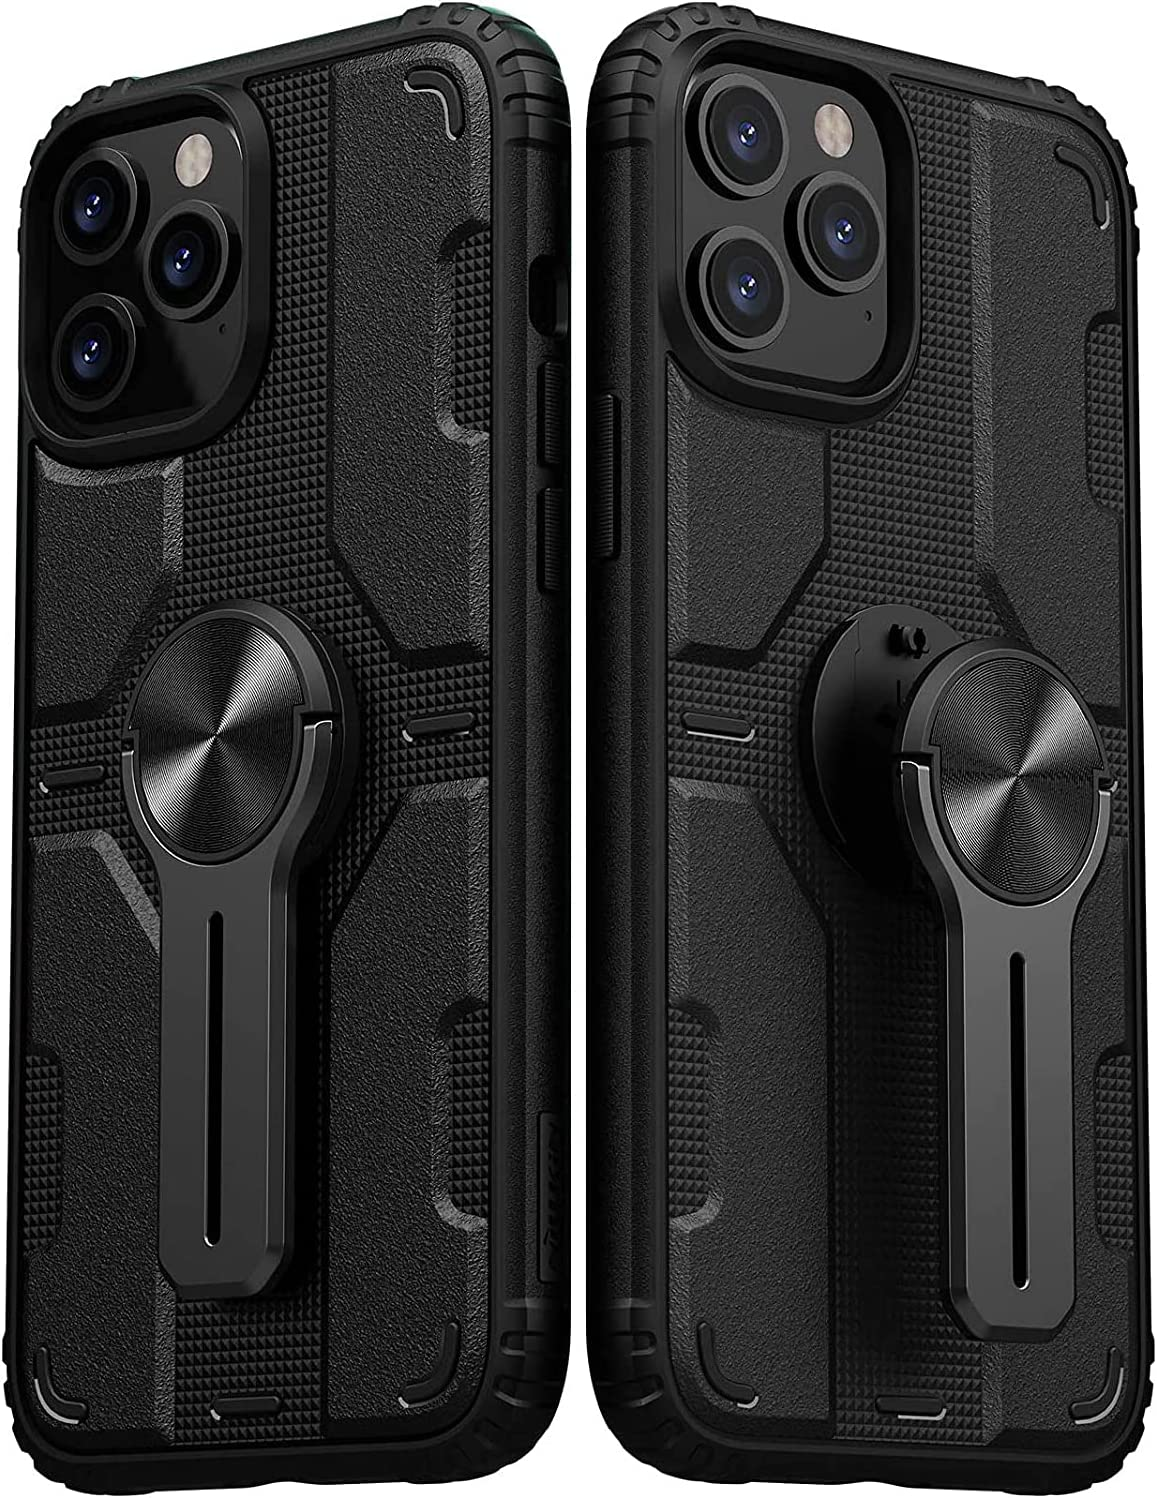 Nillkin Designed for iPhone 12 Pro Max Case,Heavy-Duty Tough Rugged Lightweight Slim Shockproof Kickstand Protective Case for iPhone 12 Pro Max 6.7 Inch, Black